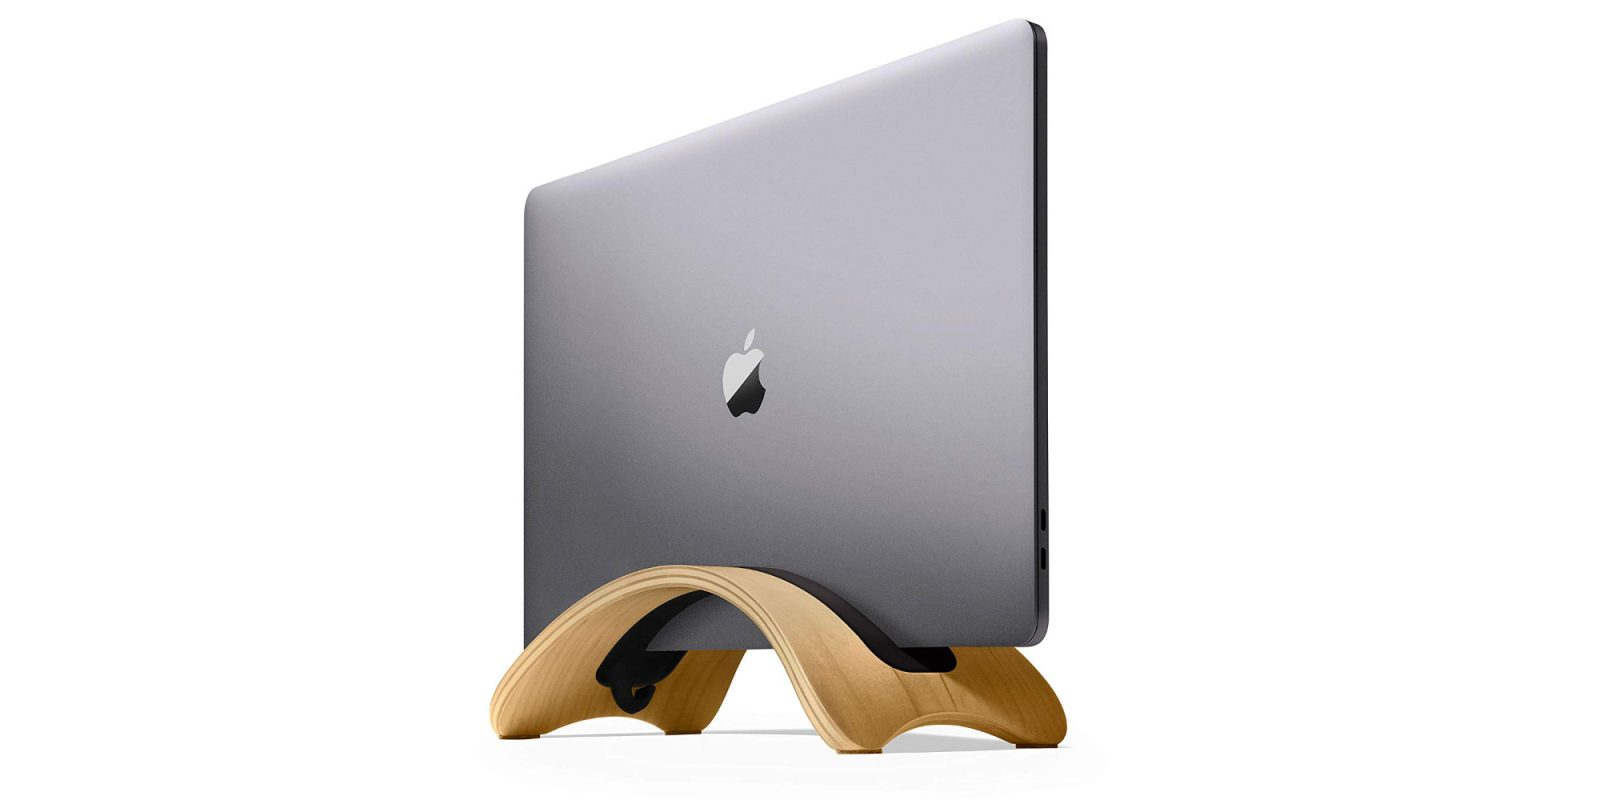 This Twelve South BookArc MacBook Stand is made of birch: $20 (Save 65%)